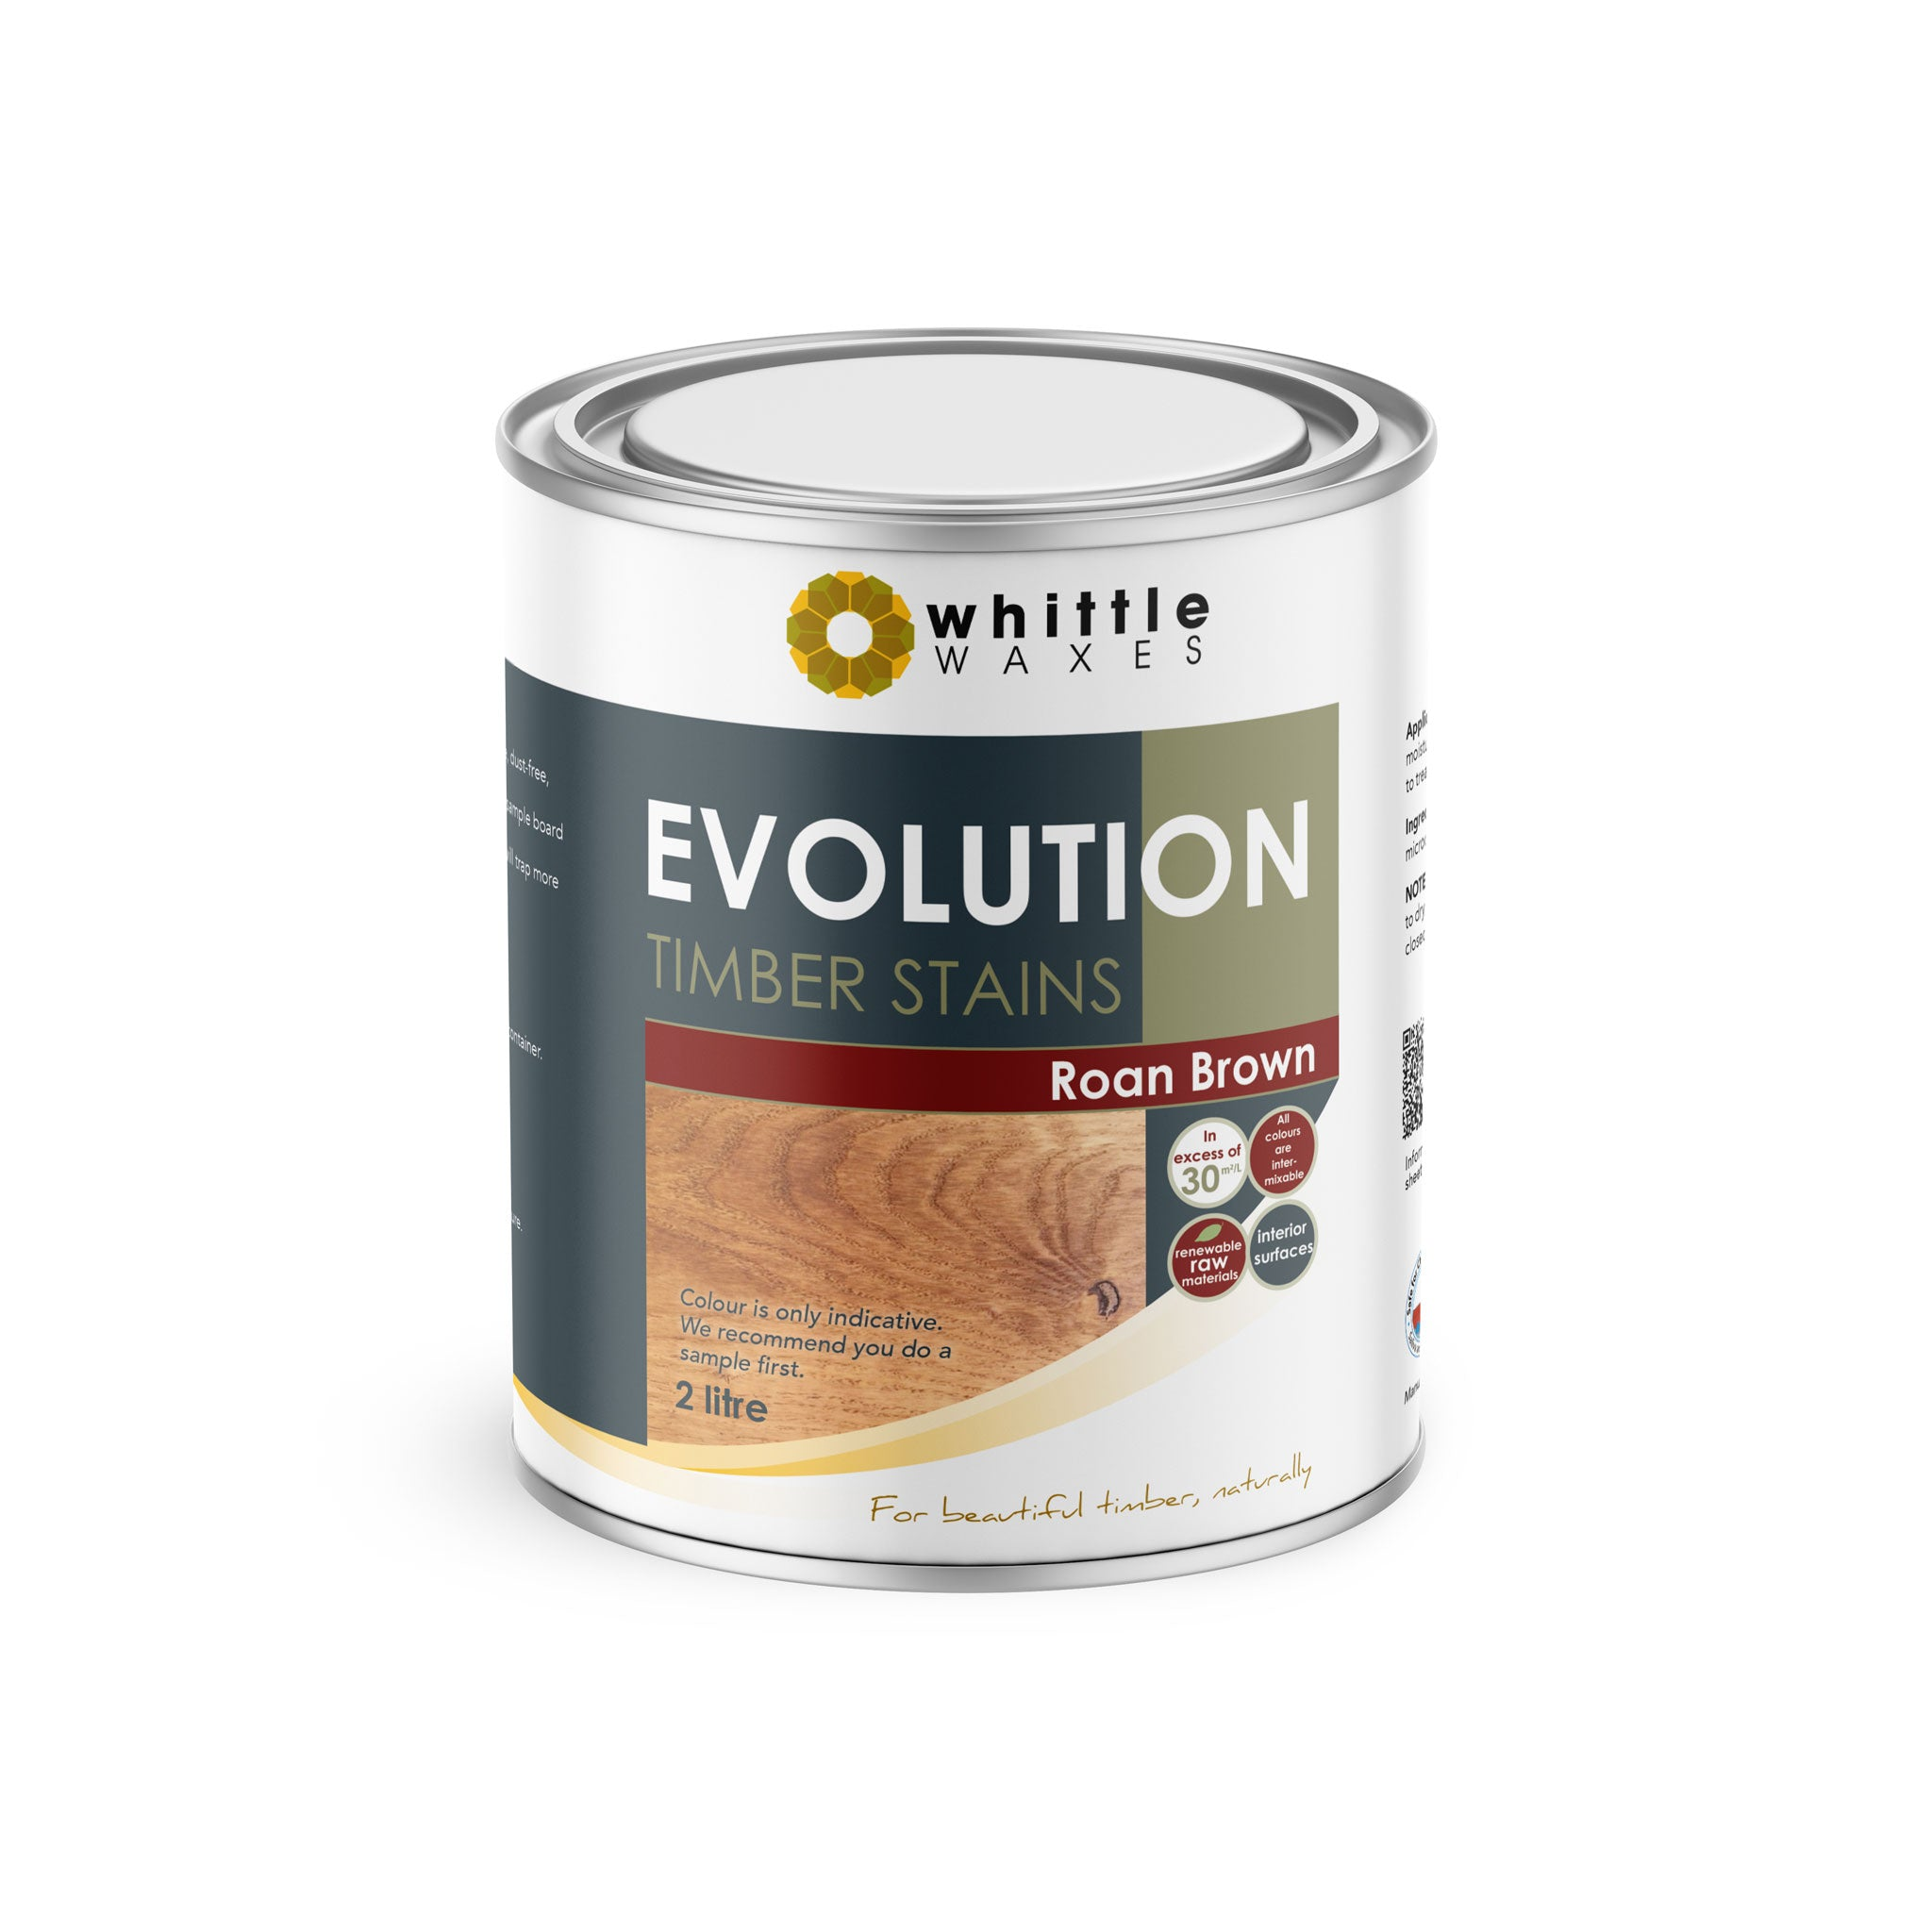 Whittle Waxes Evolution Colours (Roan Brown) - quality timber stain - 2 Litre